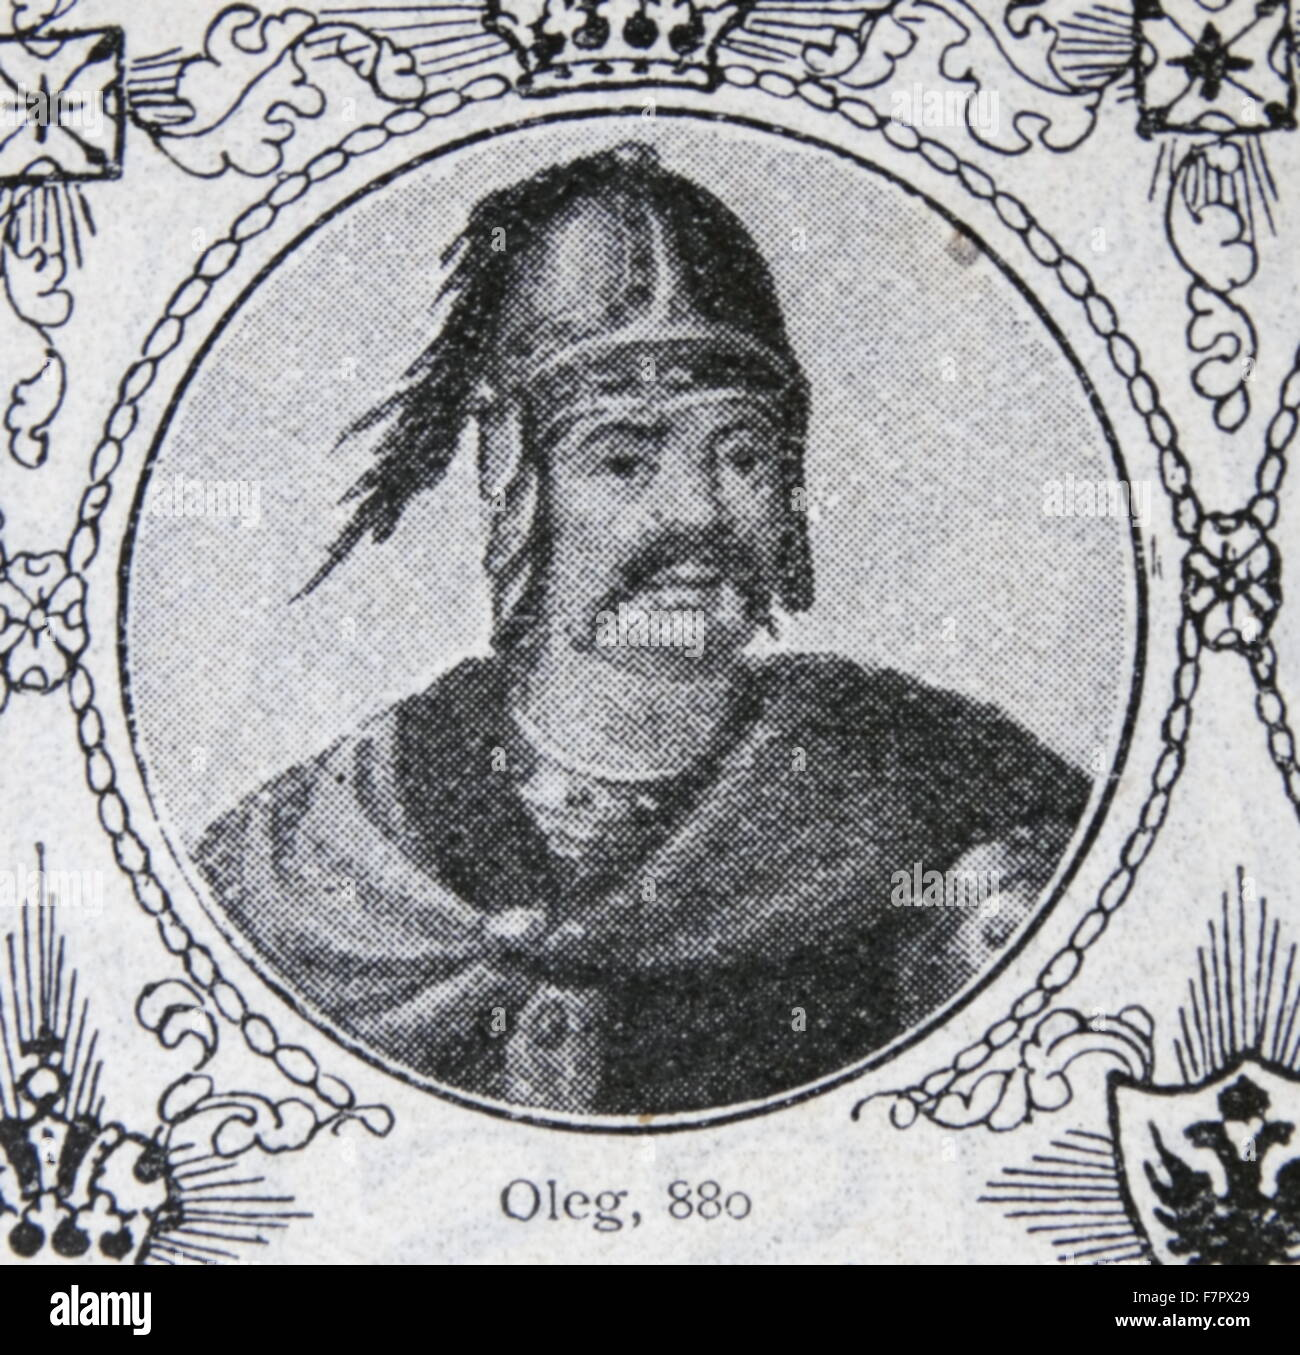 Oleg of Novgorod a Varangian prince (or konung) who ruled all or part of the Rus' people during the early 10th - Stock Image